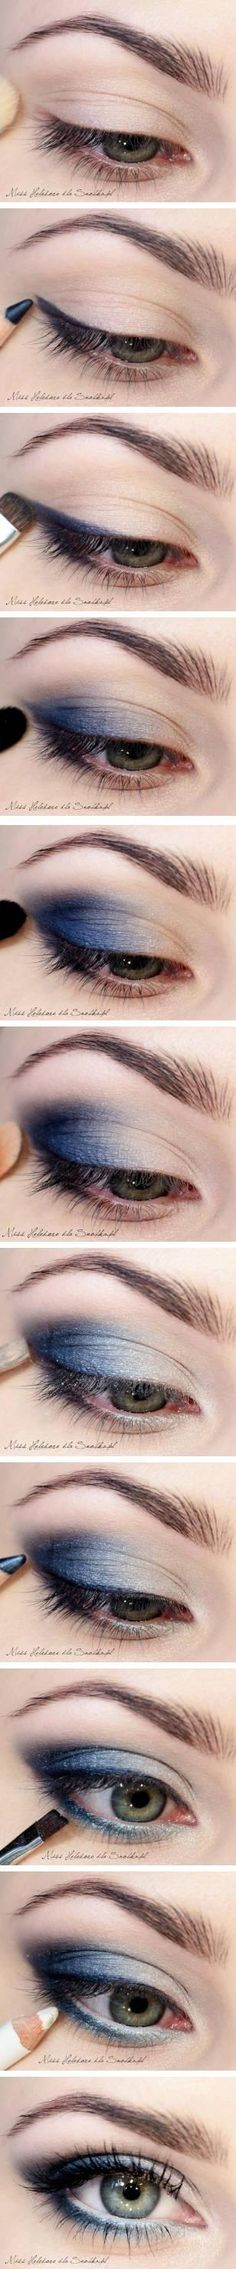 Blue Smokey Eye Tutorial